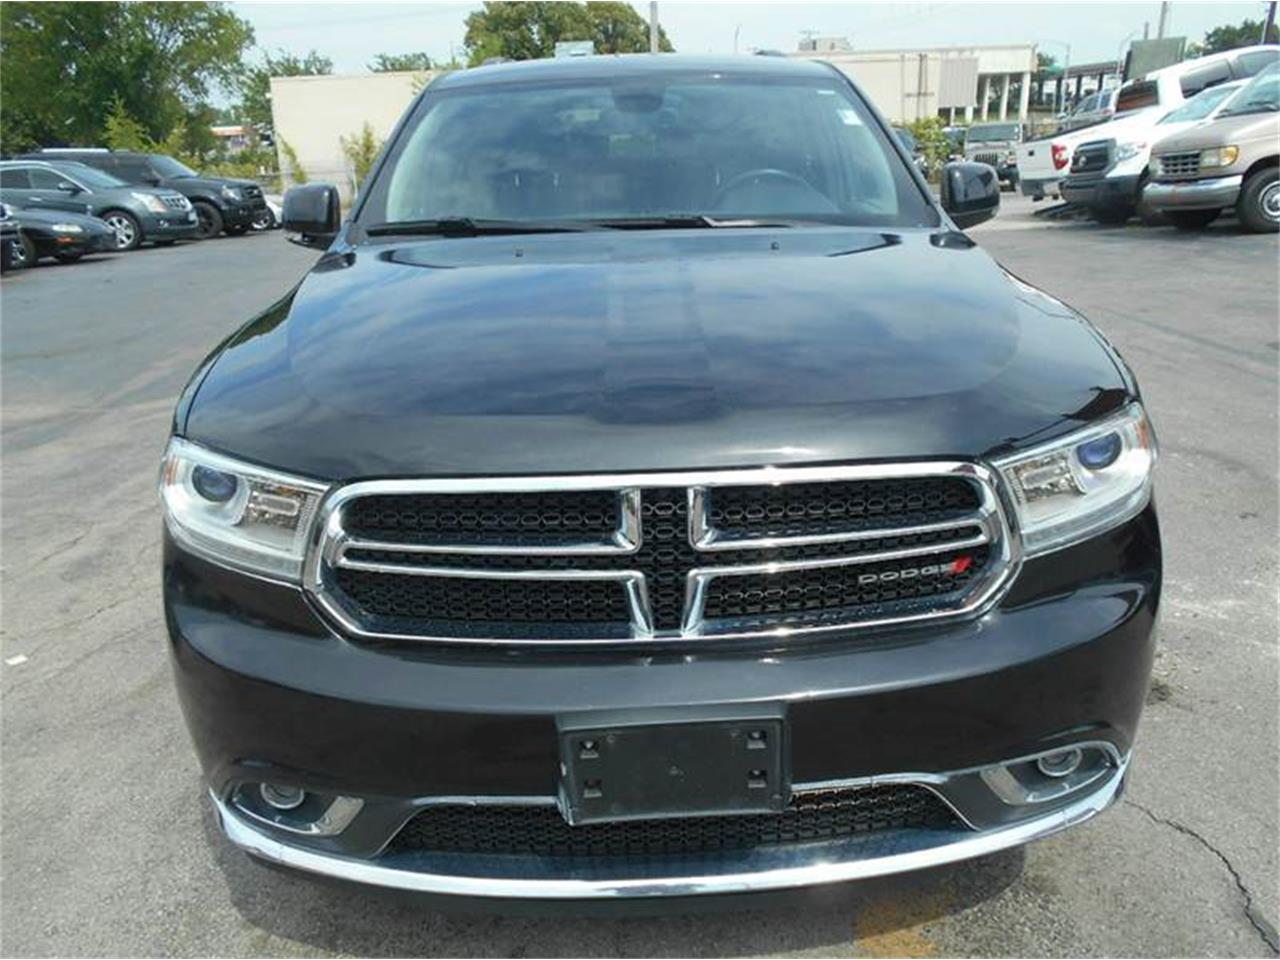 Large Picture of '14 Dodge Durango located in Kansas - LHAR